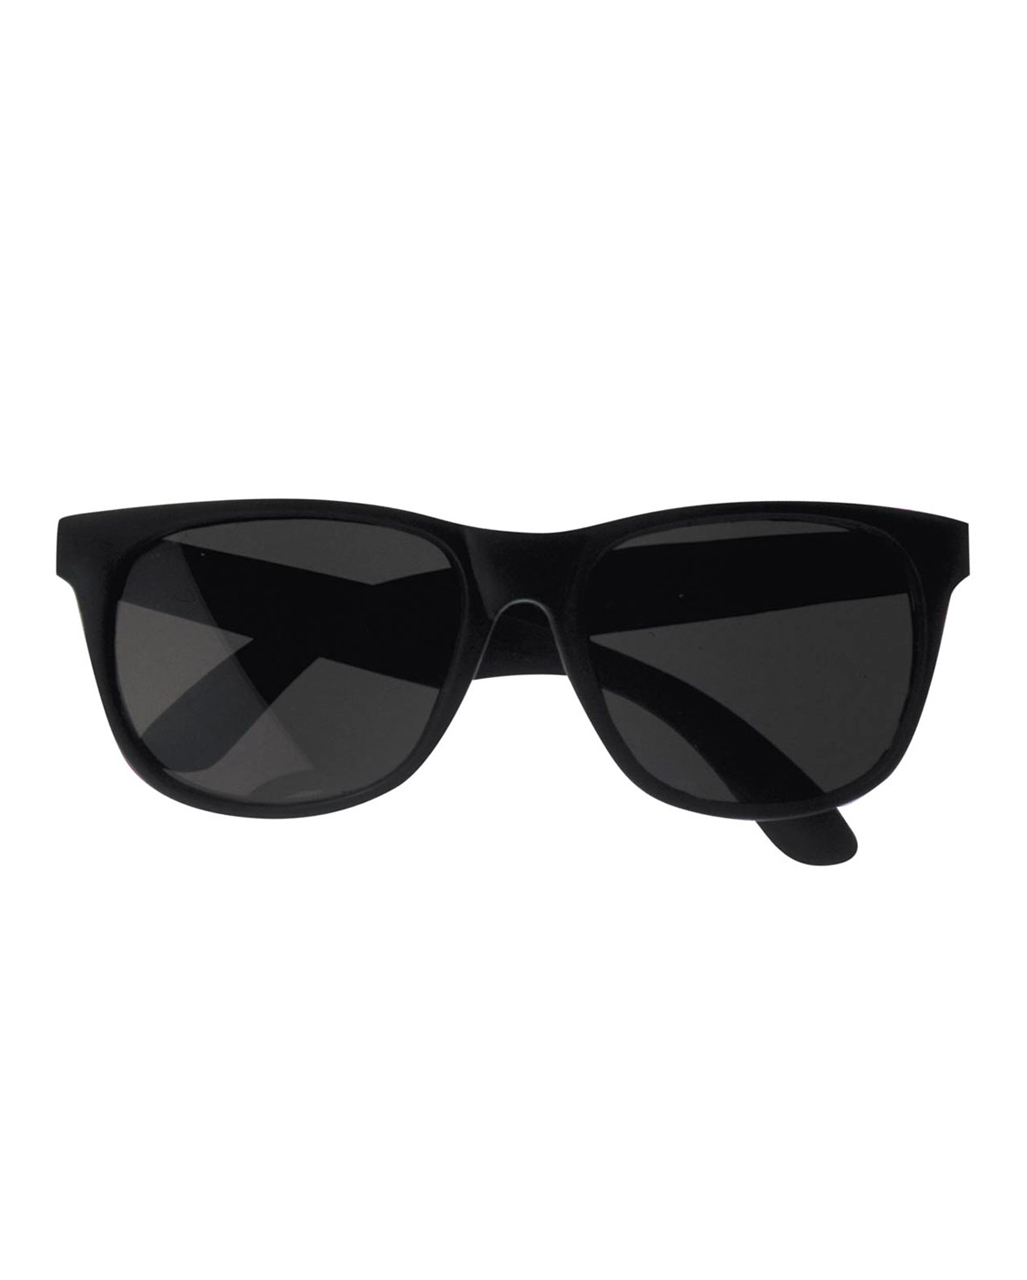 7c0580c9ee Blues Brother Glasses Costume Accessories